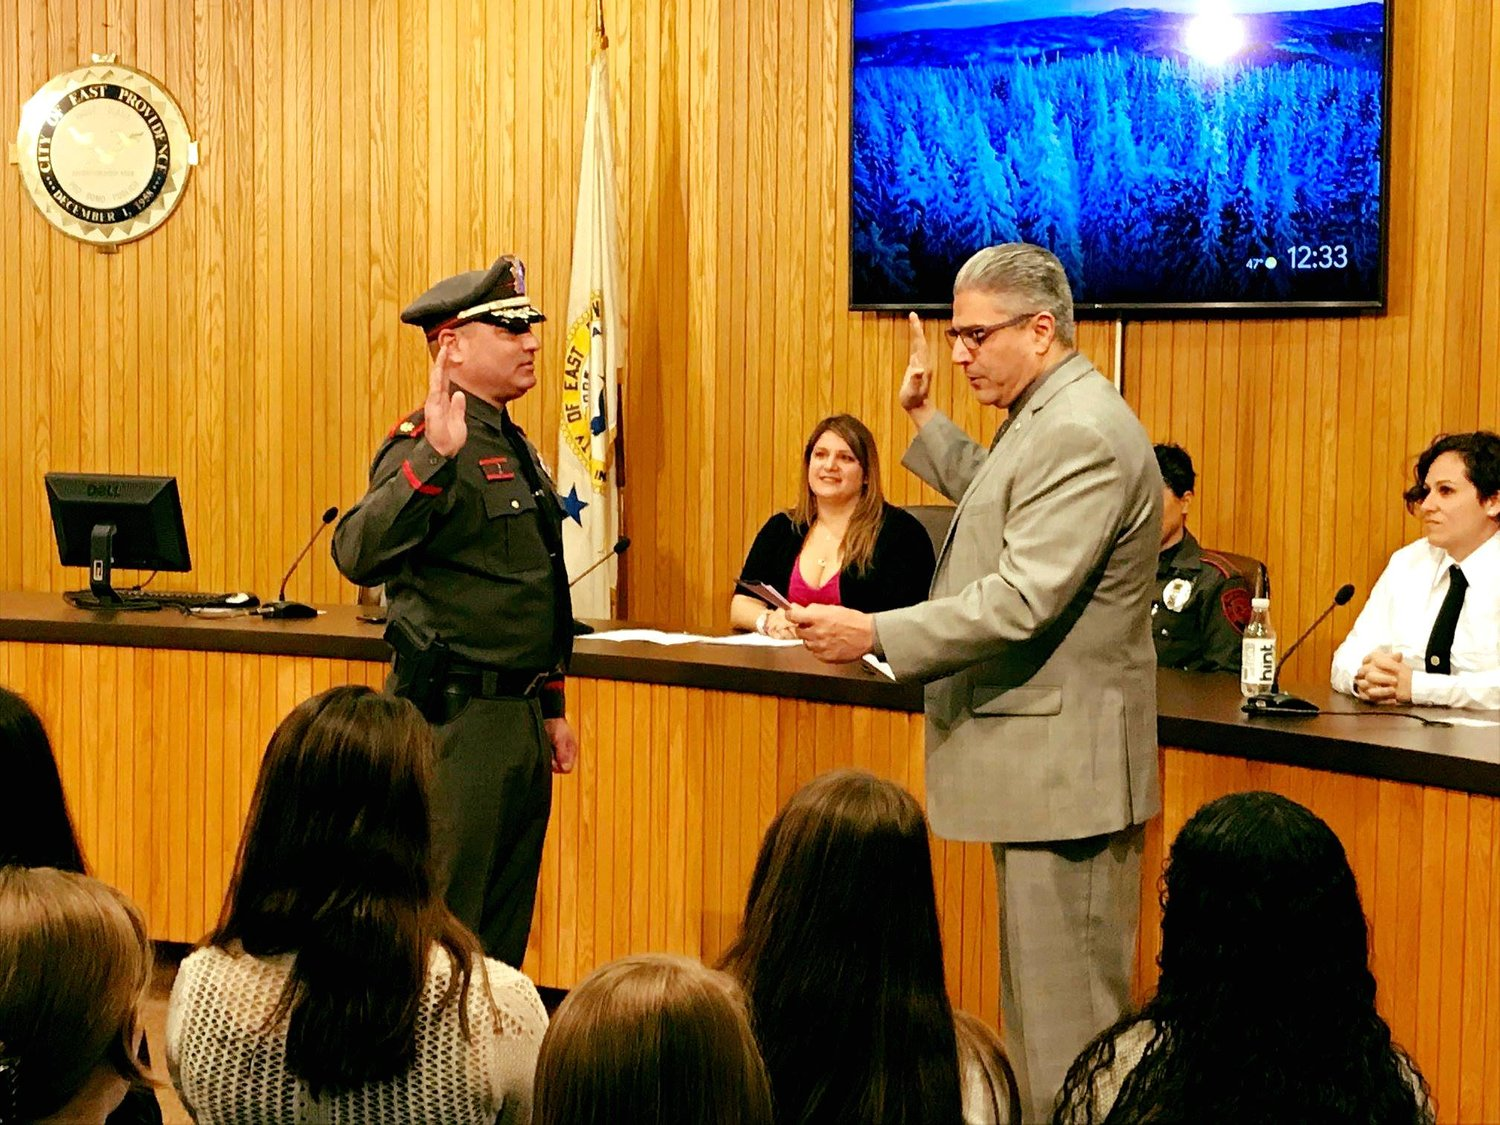 Police Chied Nebus being sworn in by Mayor Bob DaSilva